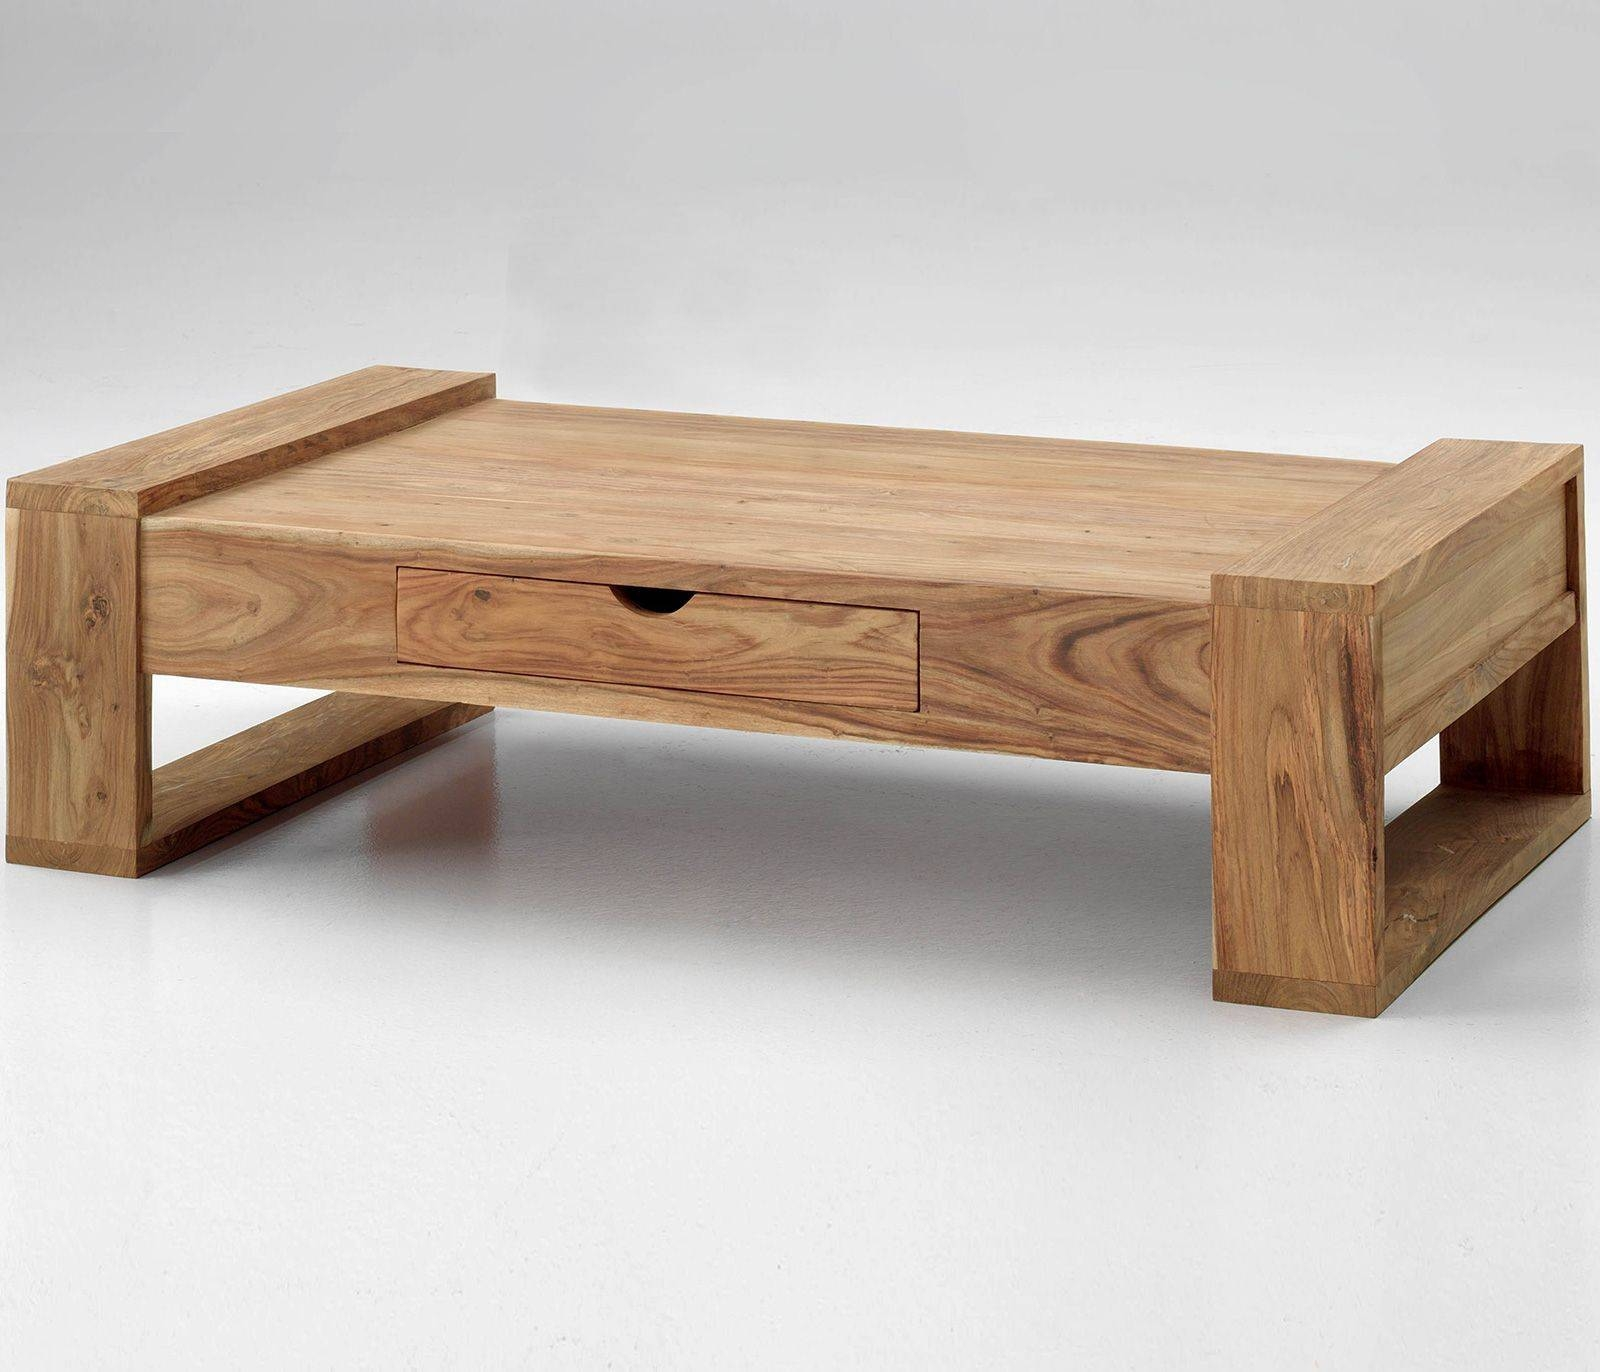 Elegant Wood Coffee Tables Furniture – Restoration Hardware, Metal Inside Chunky Rustic Coffee Tables (View 13 of 30)